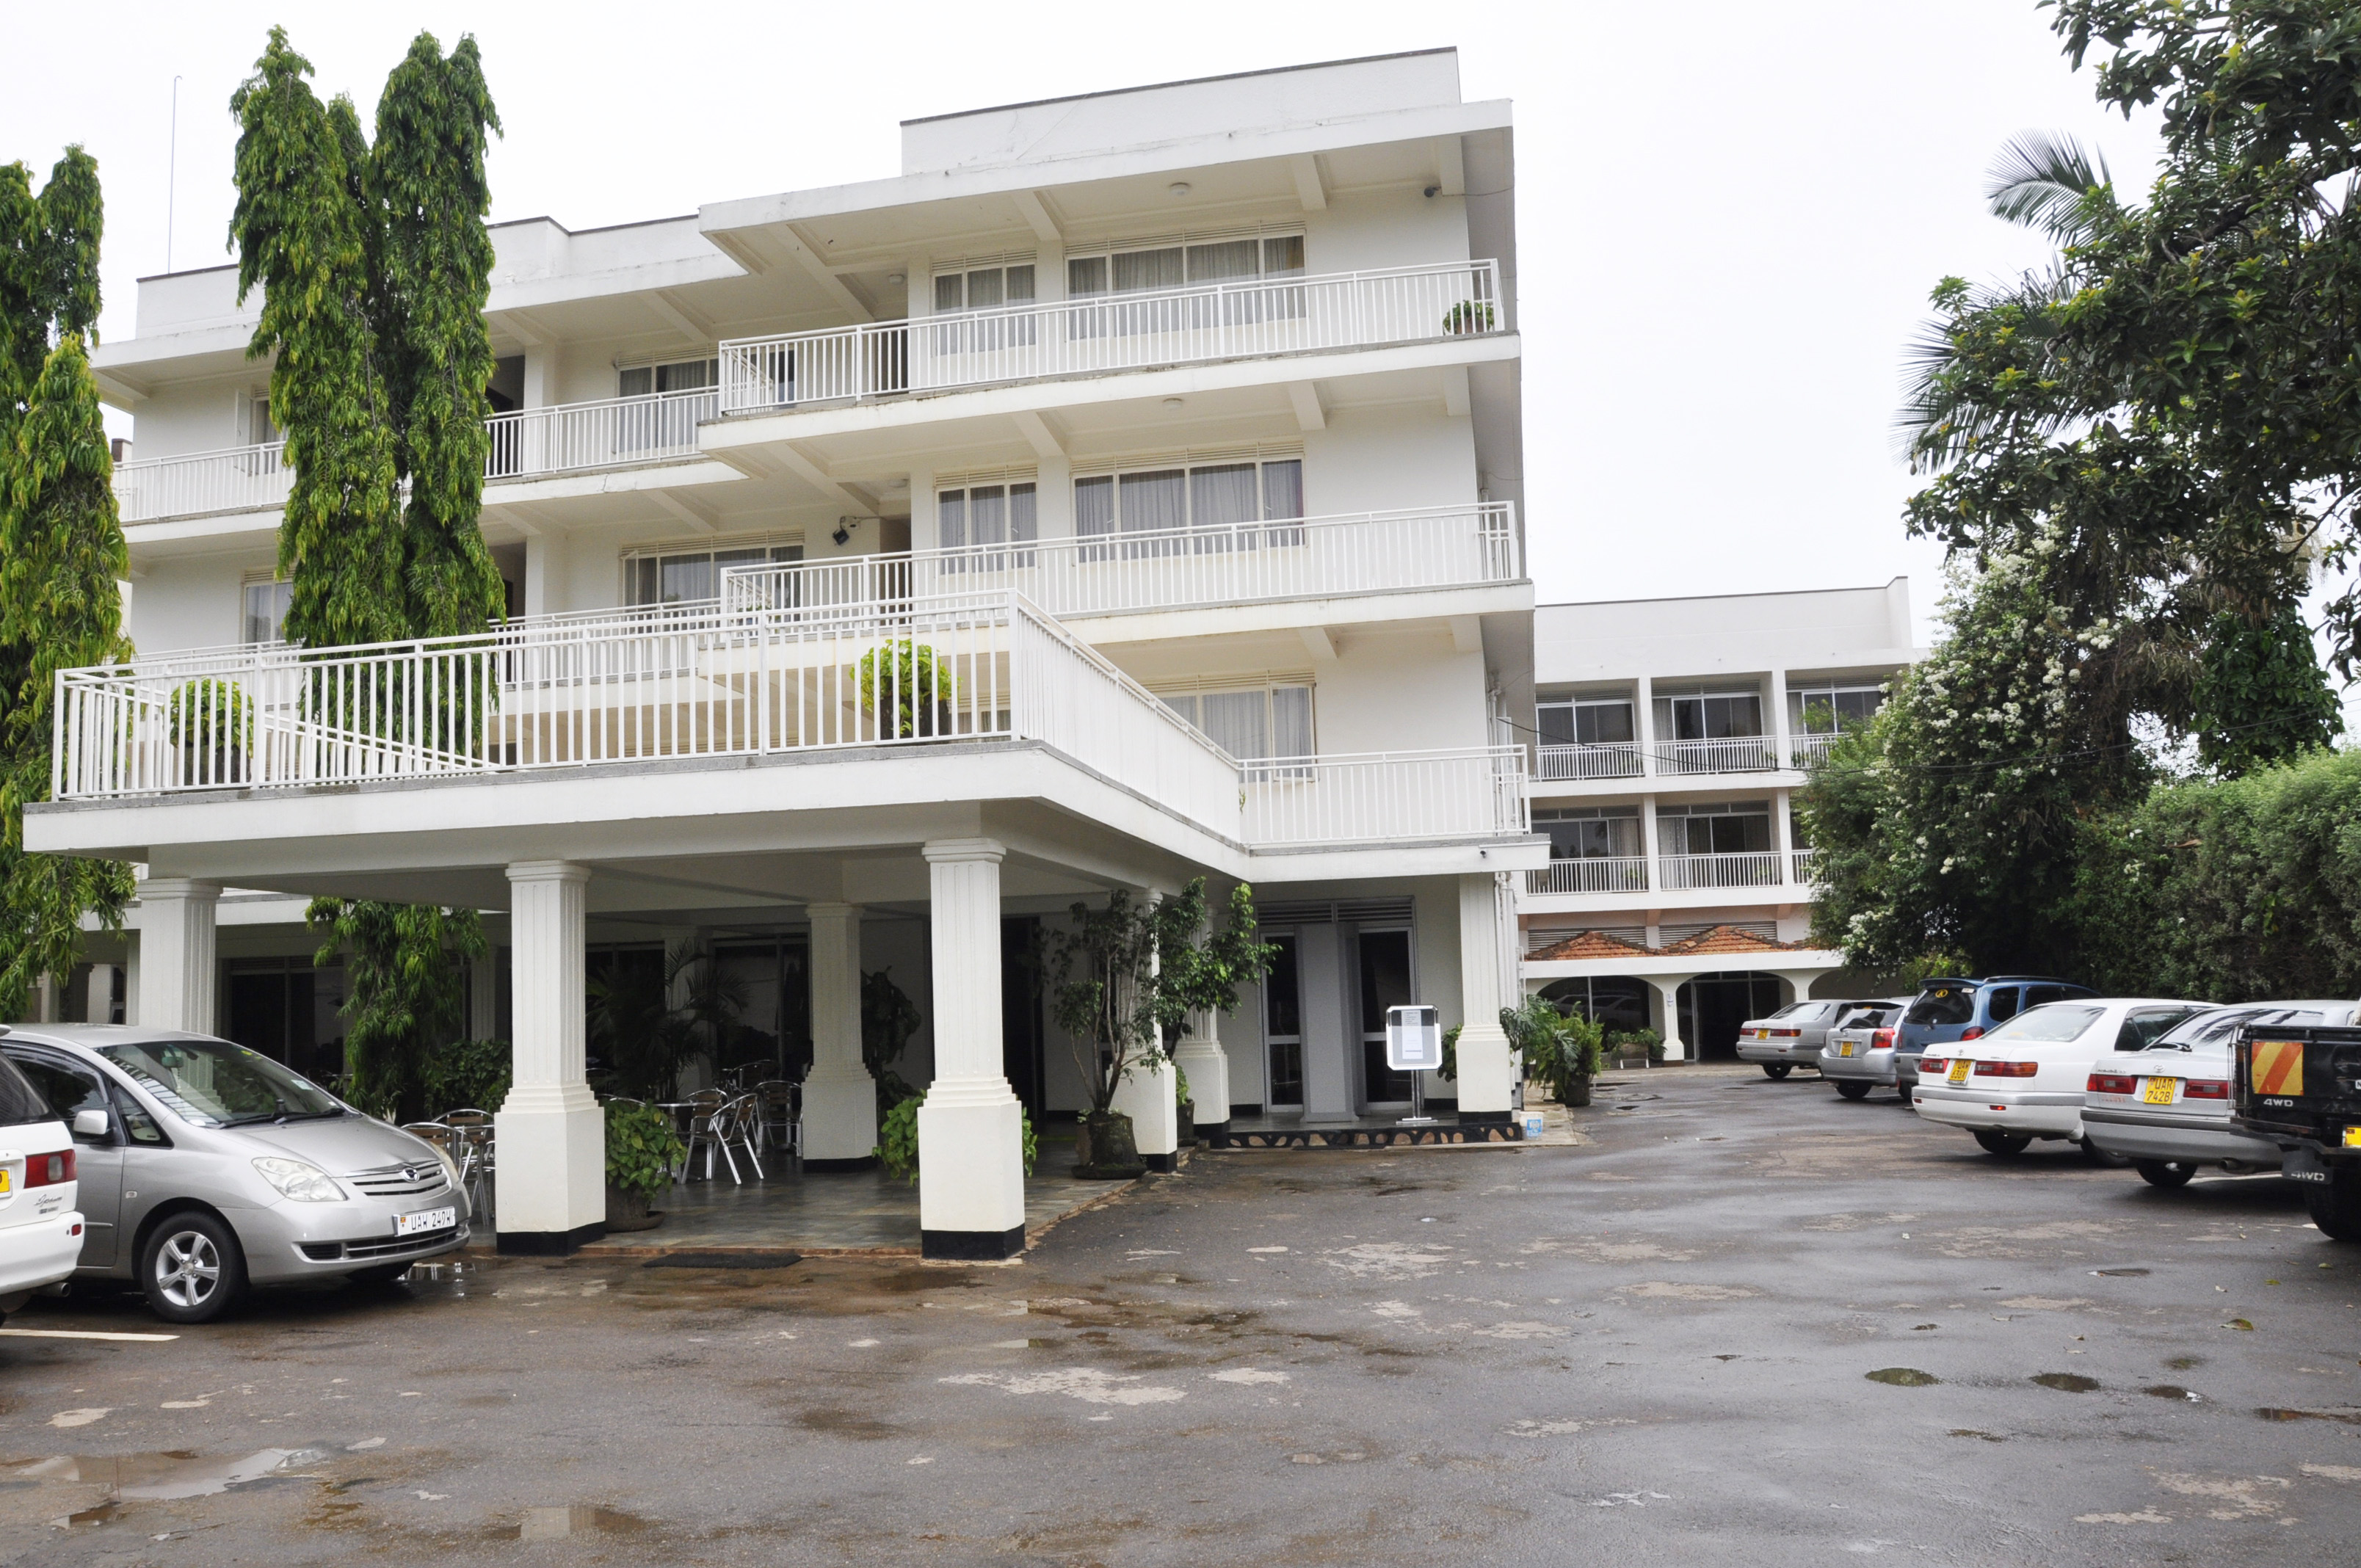 HOTEL BROVAD LTD FRONT VIEW